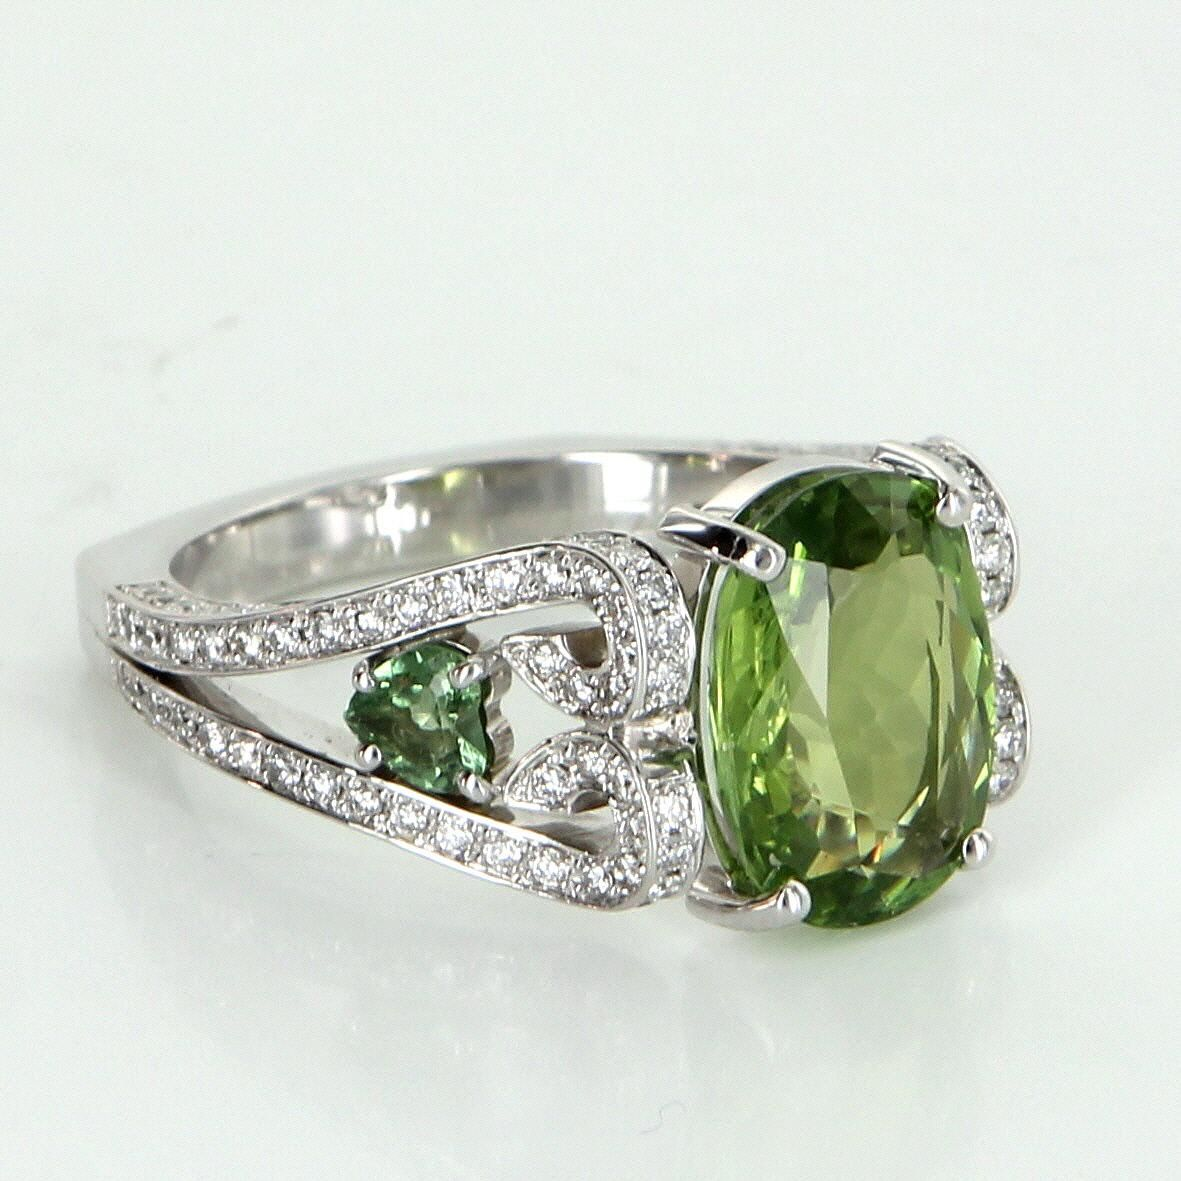 emerald wedding rings cut ring peridot pt preset yellow diamond engagement pid gold